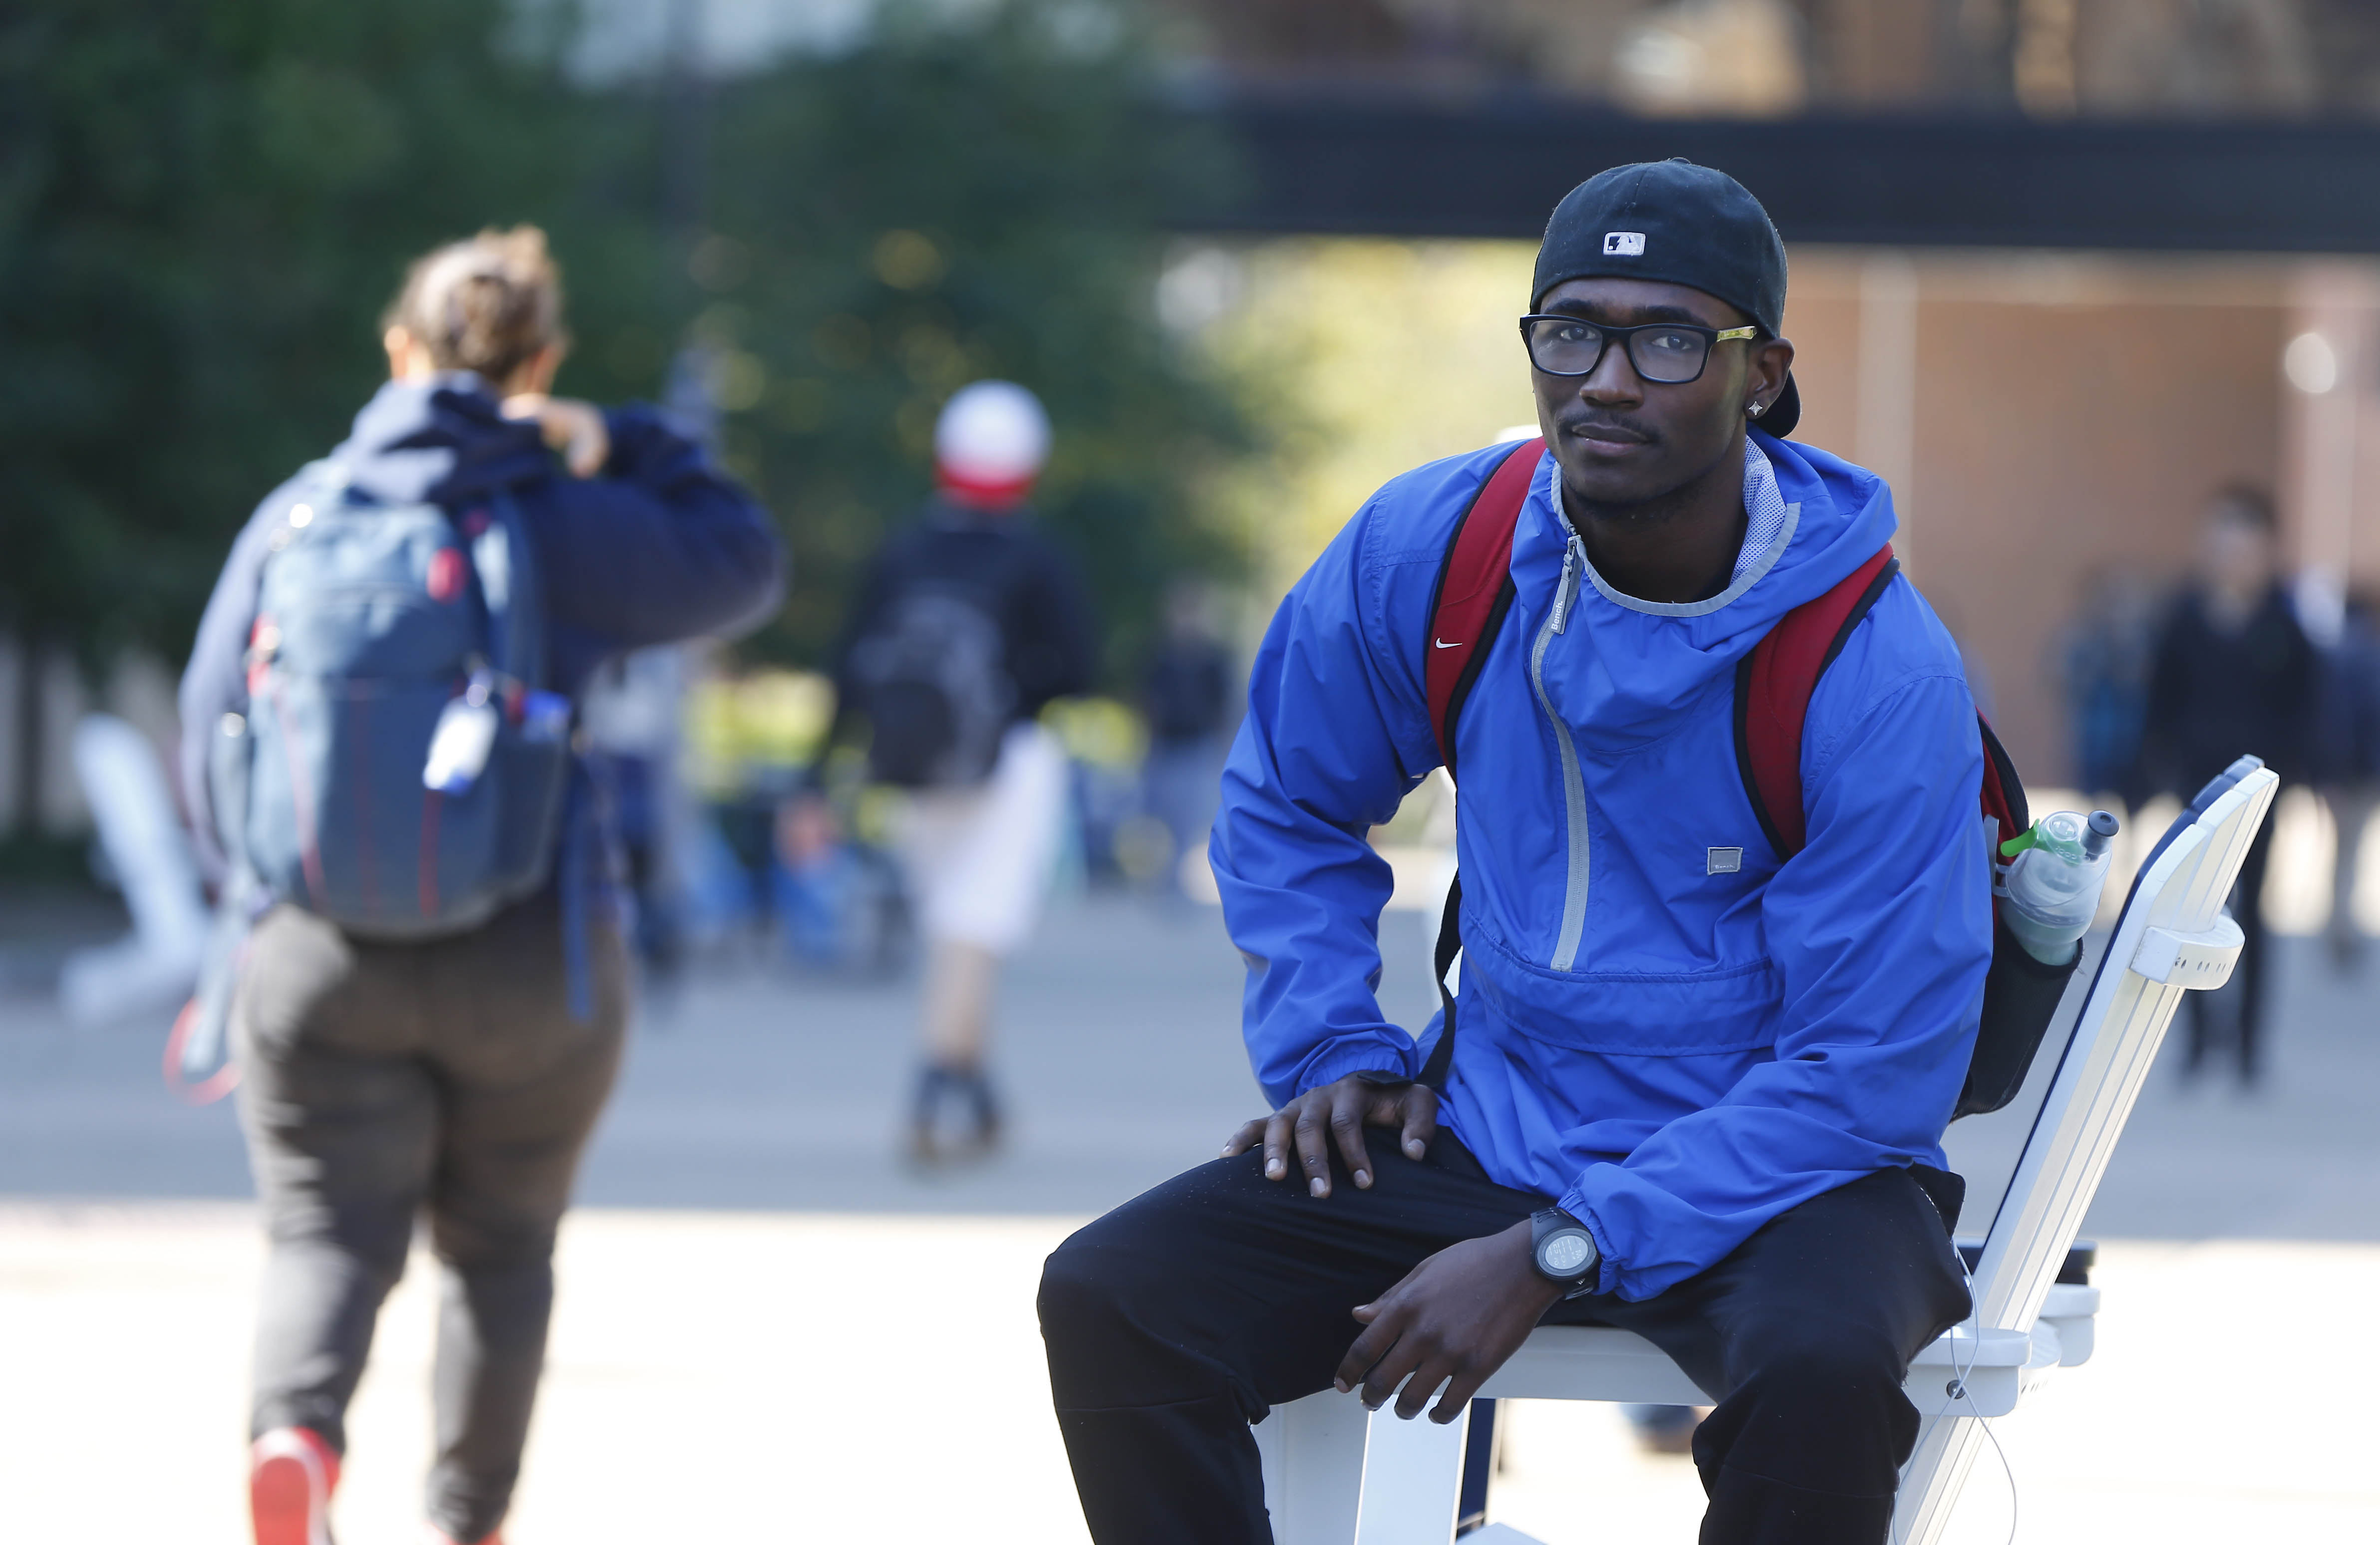 UB student Chaquiel Nettles is now majoring in psychology and eventually hopes to become a teacher. (Mark Mulville/The Buffalo News)